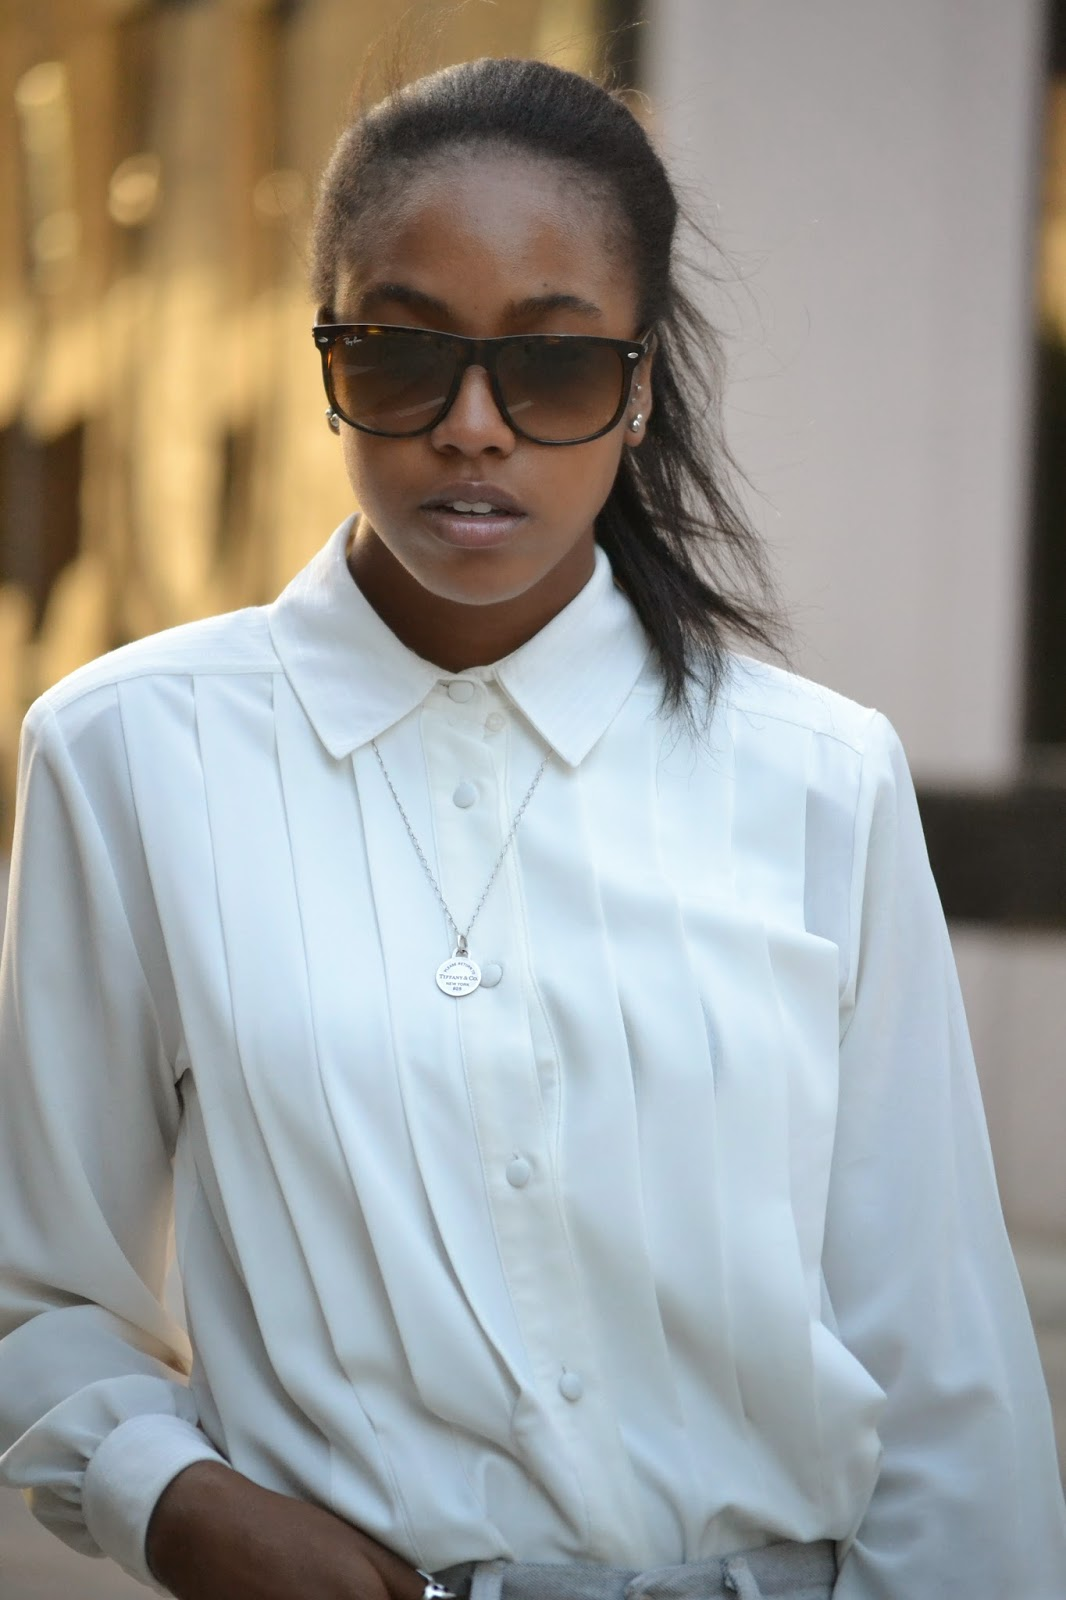 Ray Ban sunglasses Vintage Pleated Valerie Stevens blouse Tiffany Co necklace